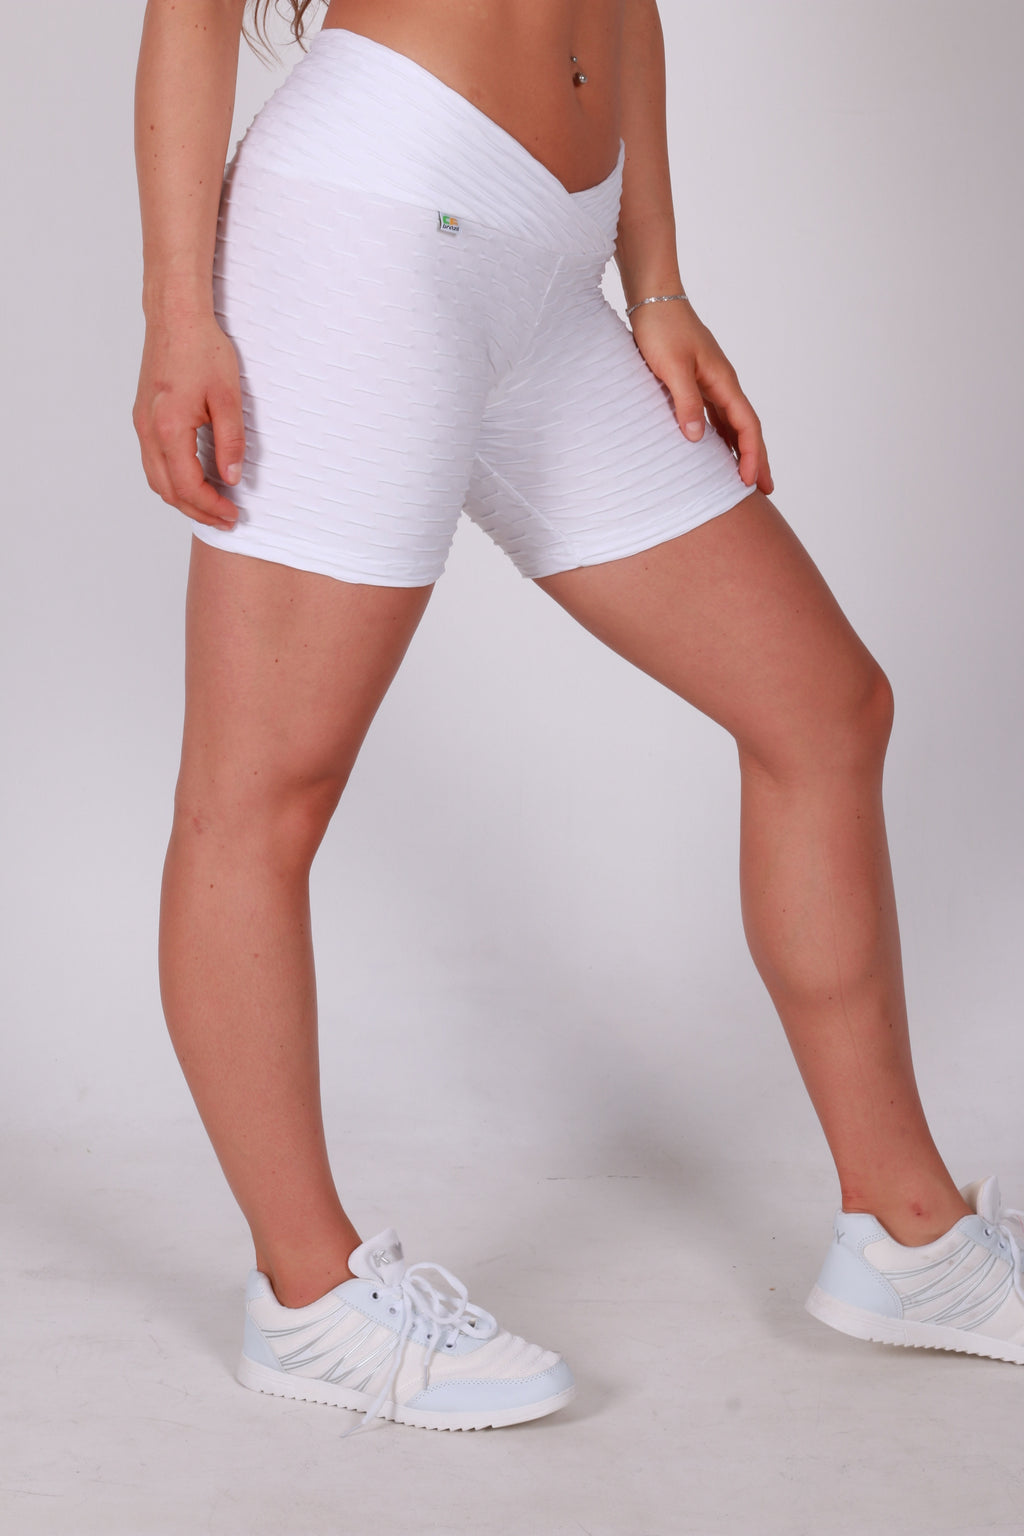 White short with a nice detail in the waistband